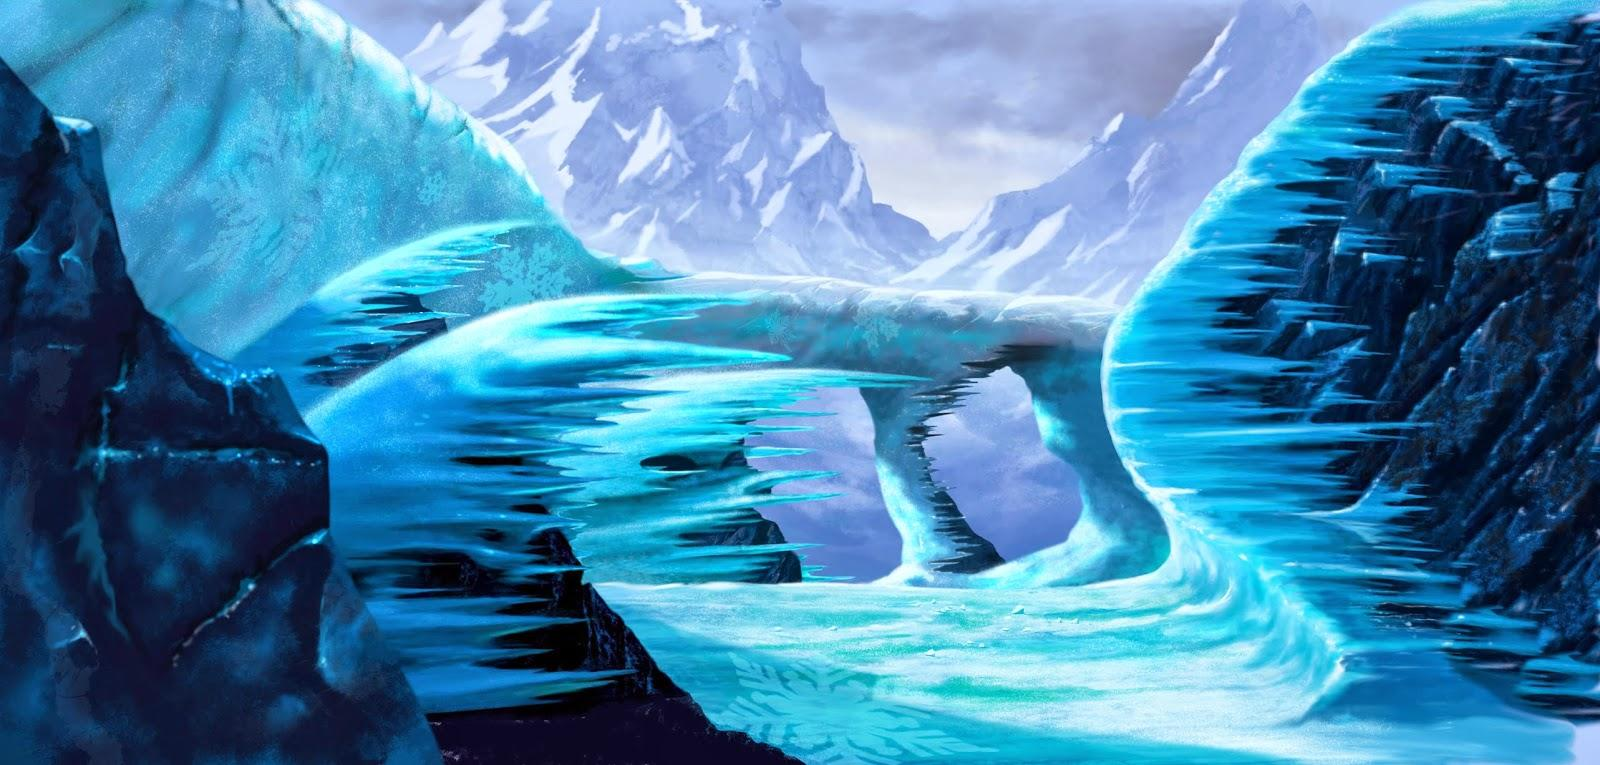 Frozen (Cancelled Kingdom Hearts game concept art)